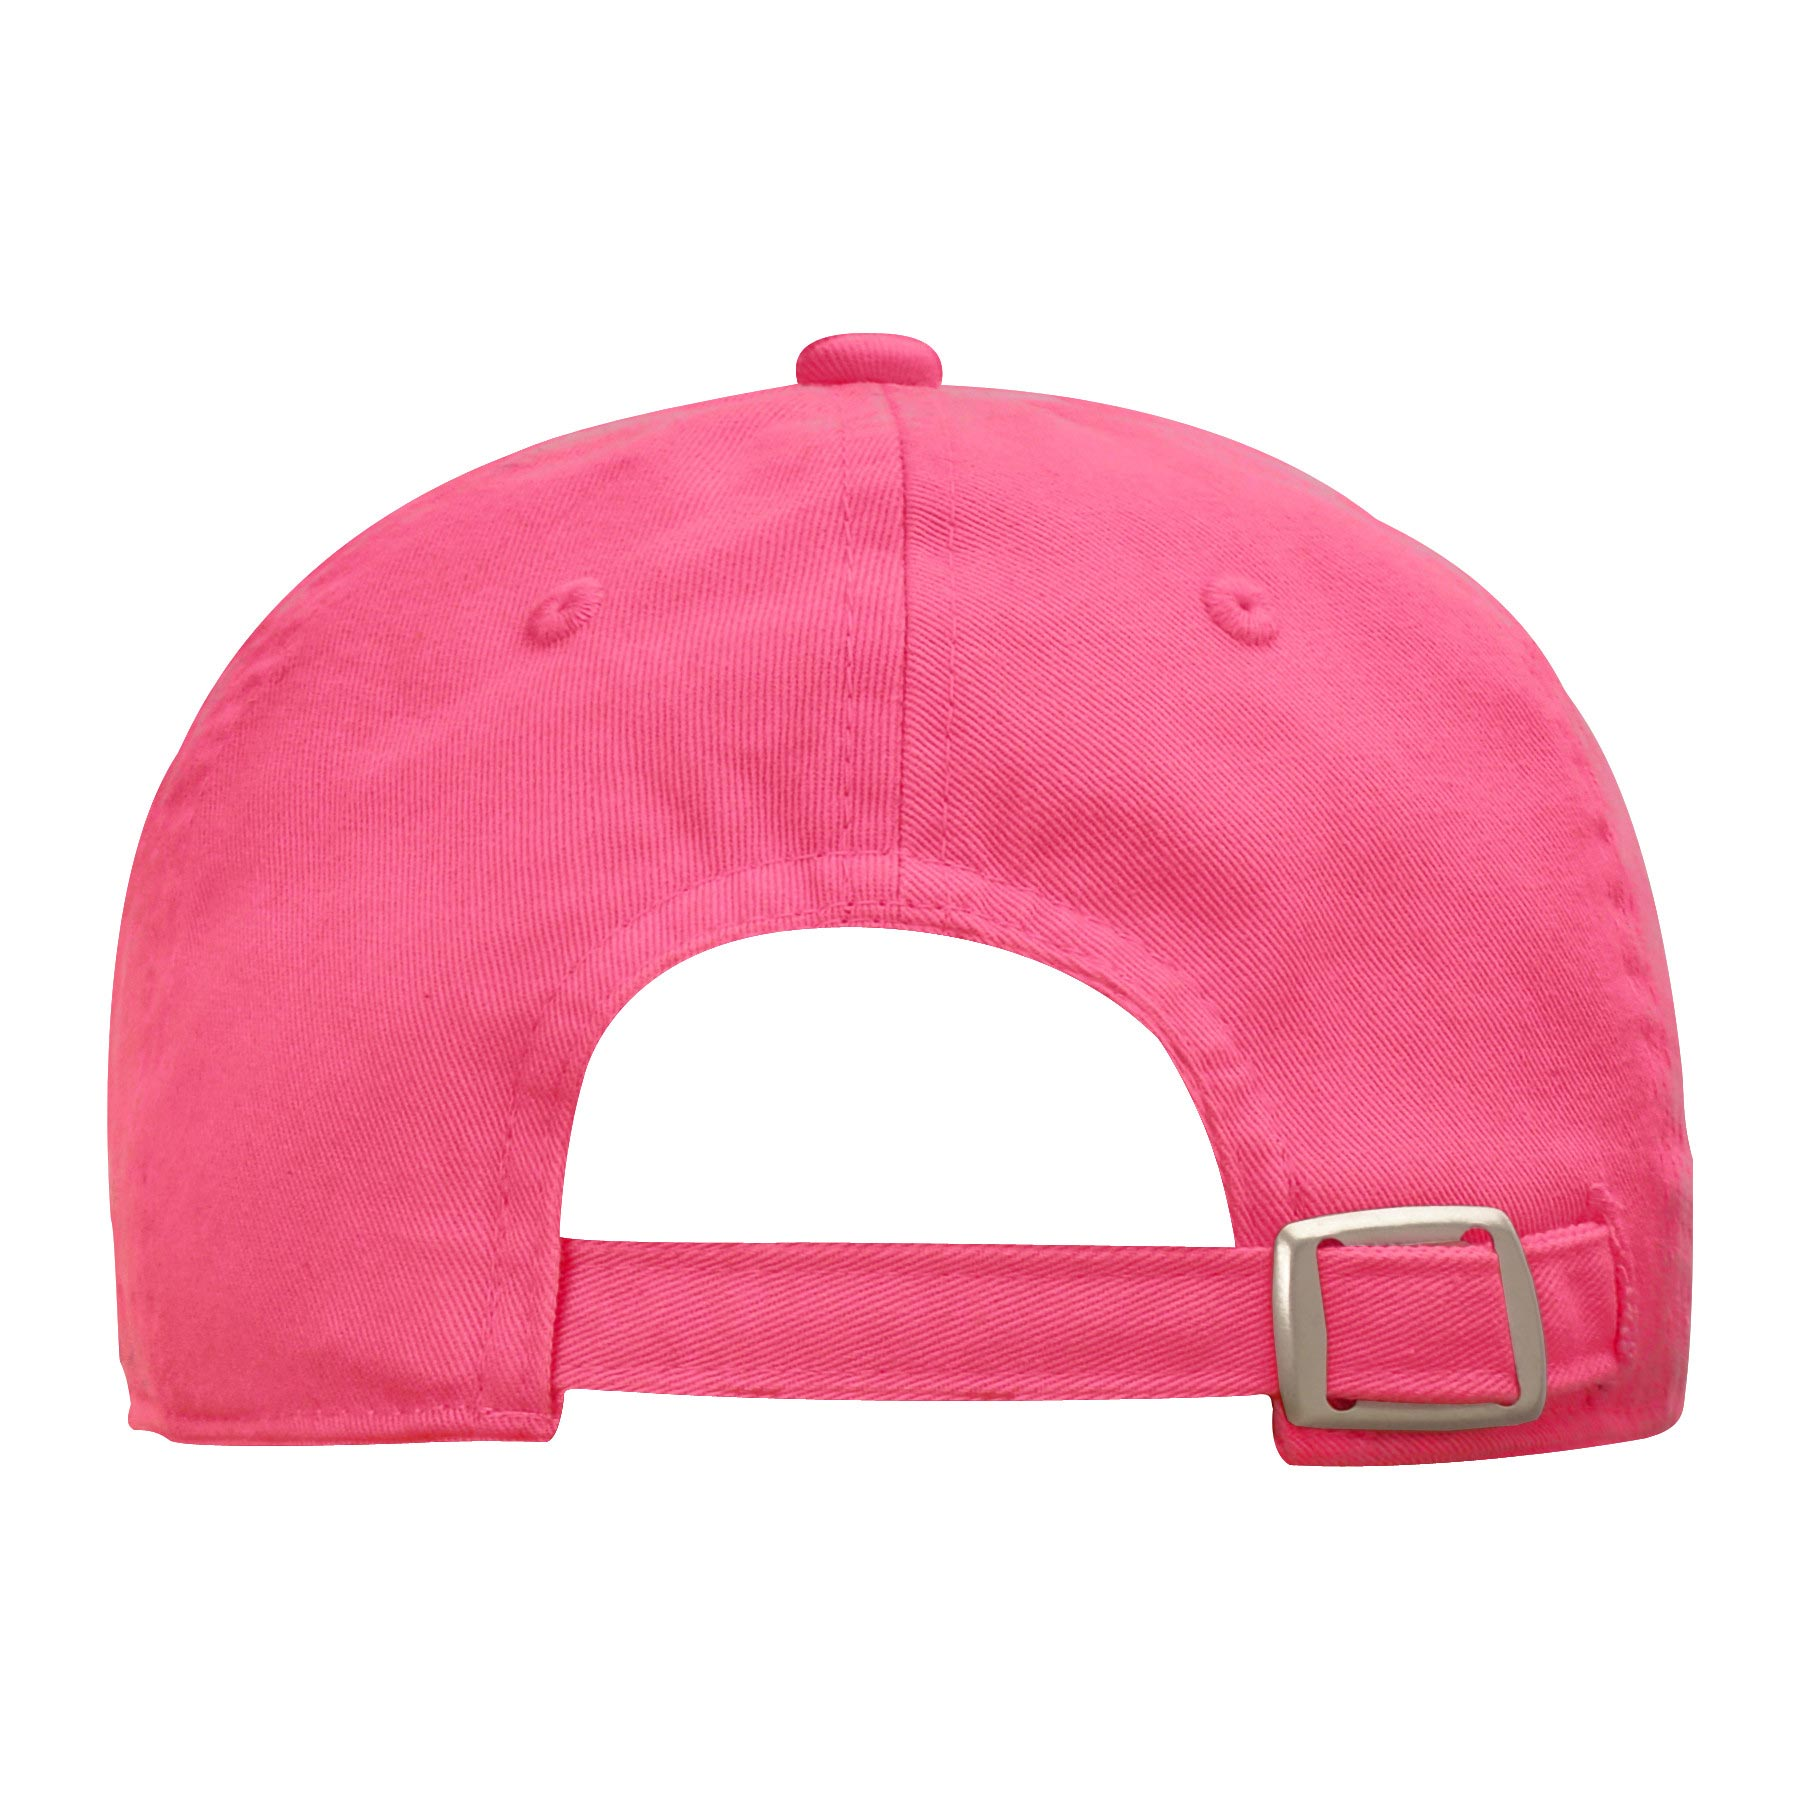 Toronto Maple Leafs Youth NHL Basic Logo Cap - Pink  1d61bbb9b284